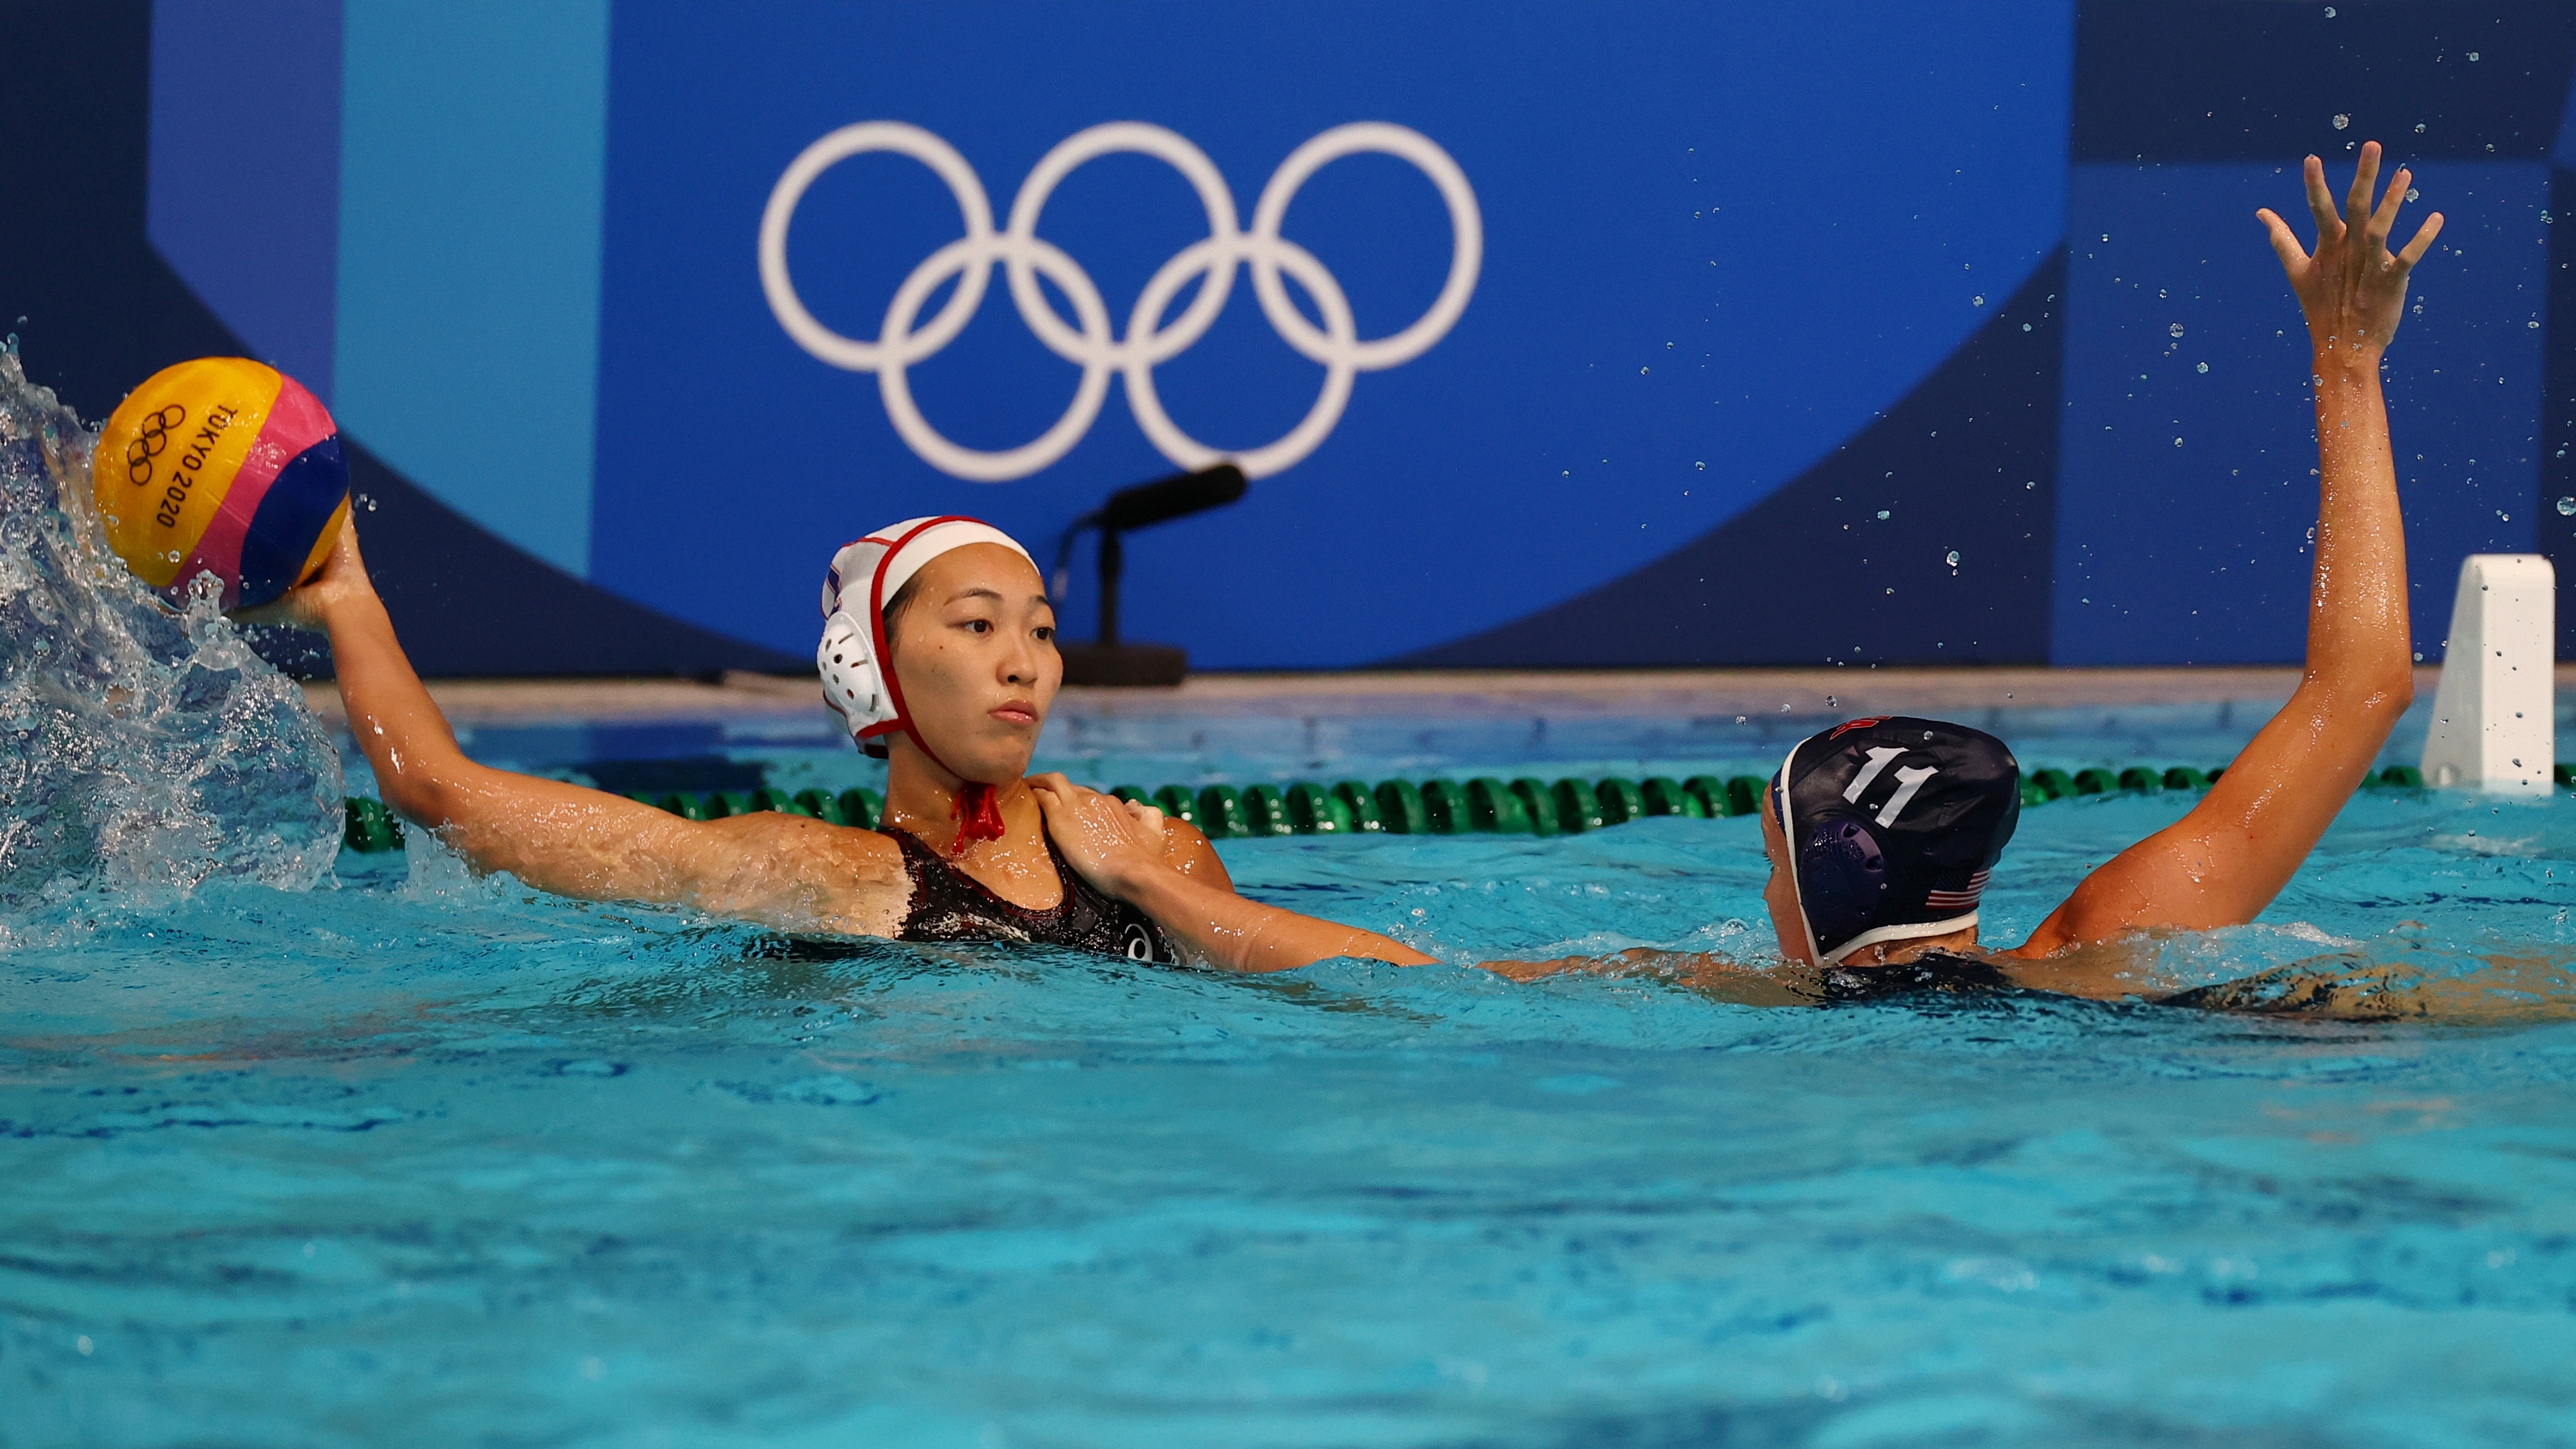 Tokyo 2020 Olympics - Water Polo - Women - Group B - Japan v United States -  Tatsumi Water Polo Centre, Tokyo, Japan – July 24, 2021. Maiko Hashida of Japan and Makenzie Fischer of the United States in action. REUTERS/Kacper Pempel